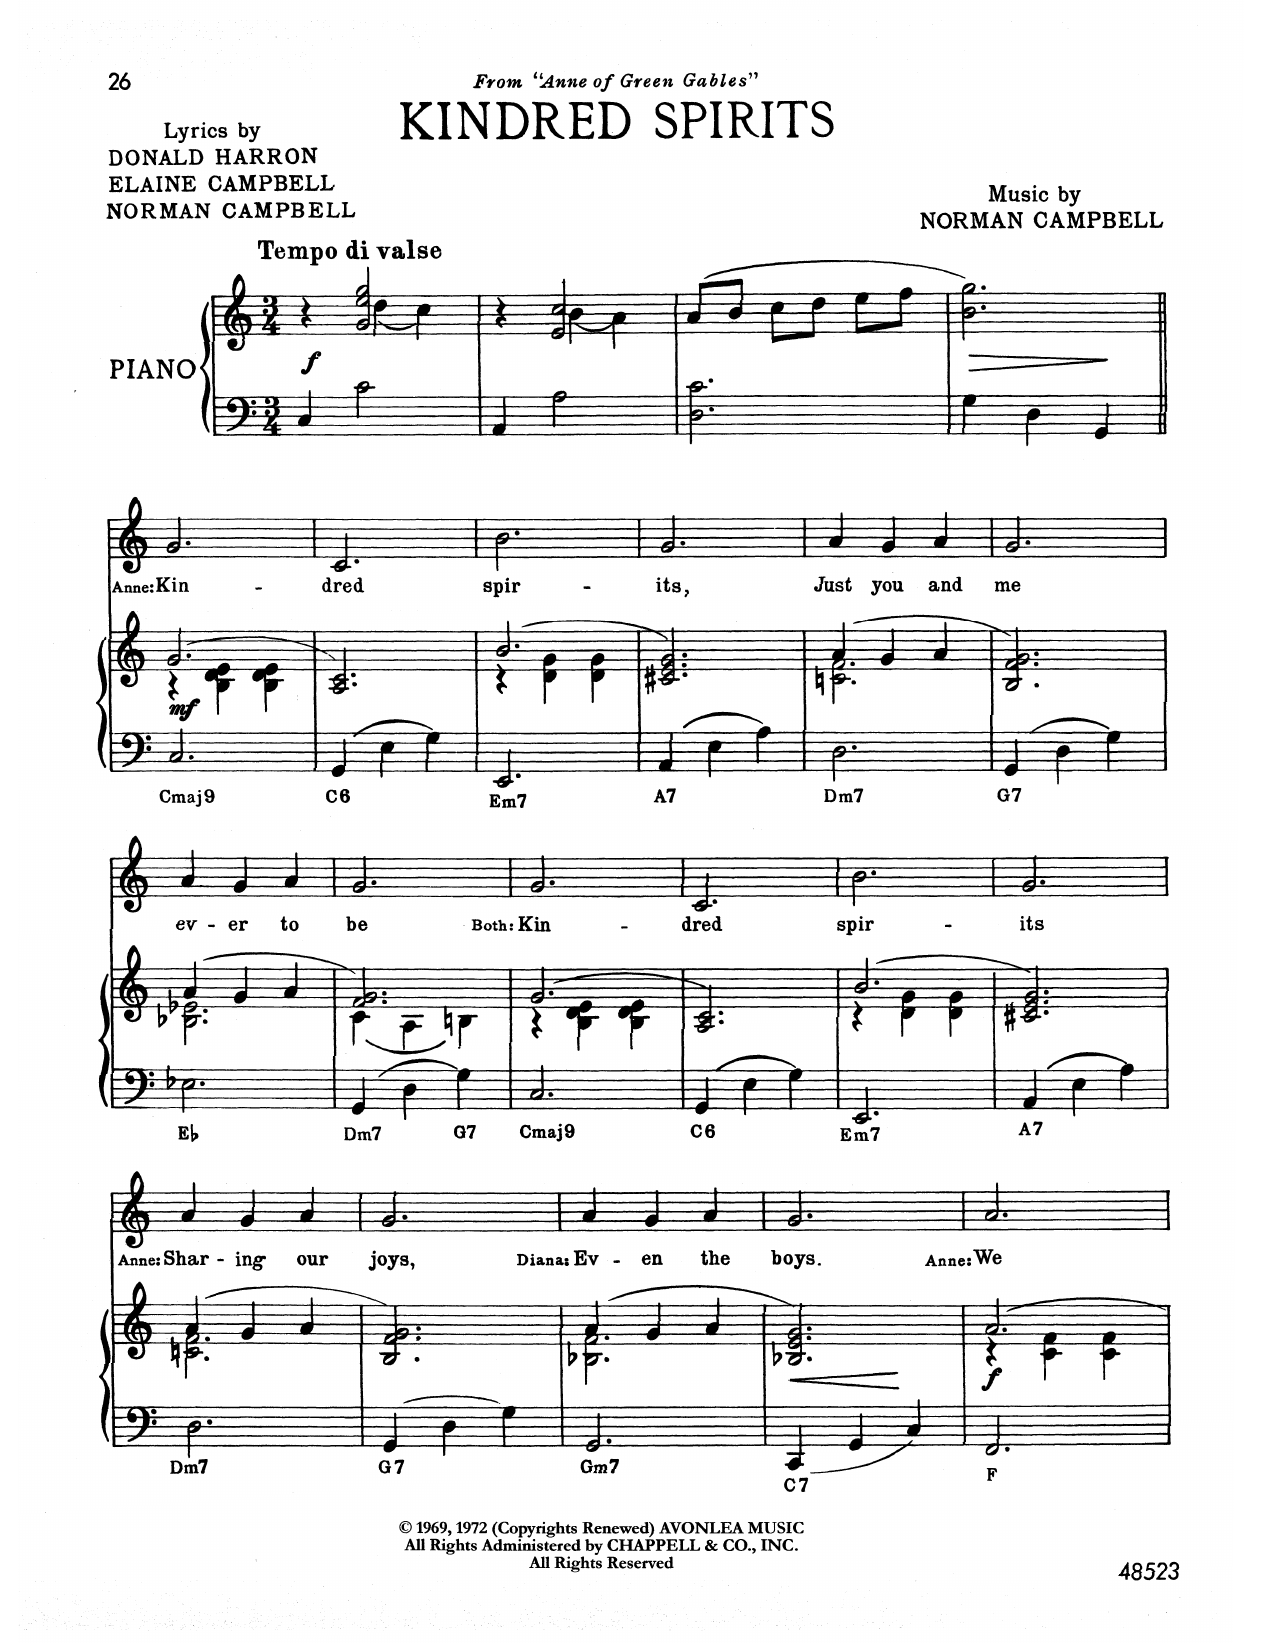 Norman Campbell Kindred Spirits (from Anne Of Green Gables) sheet music notes printable PDF score